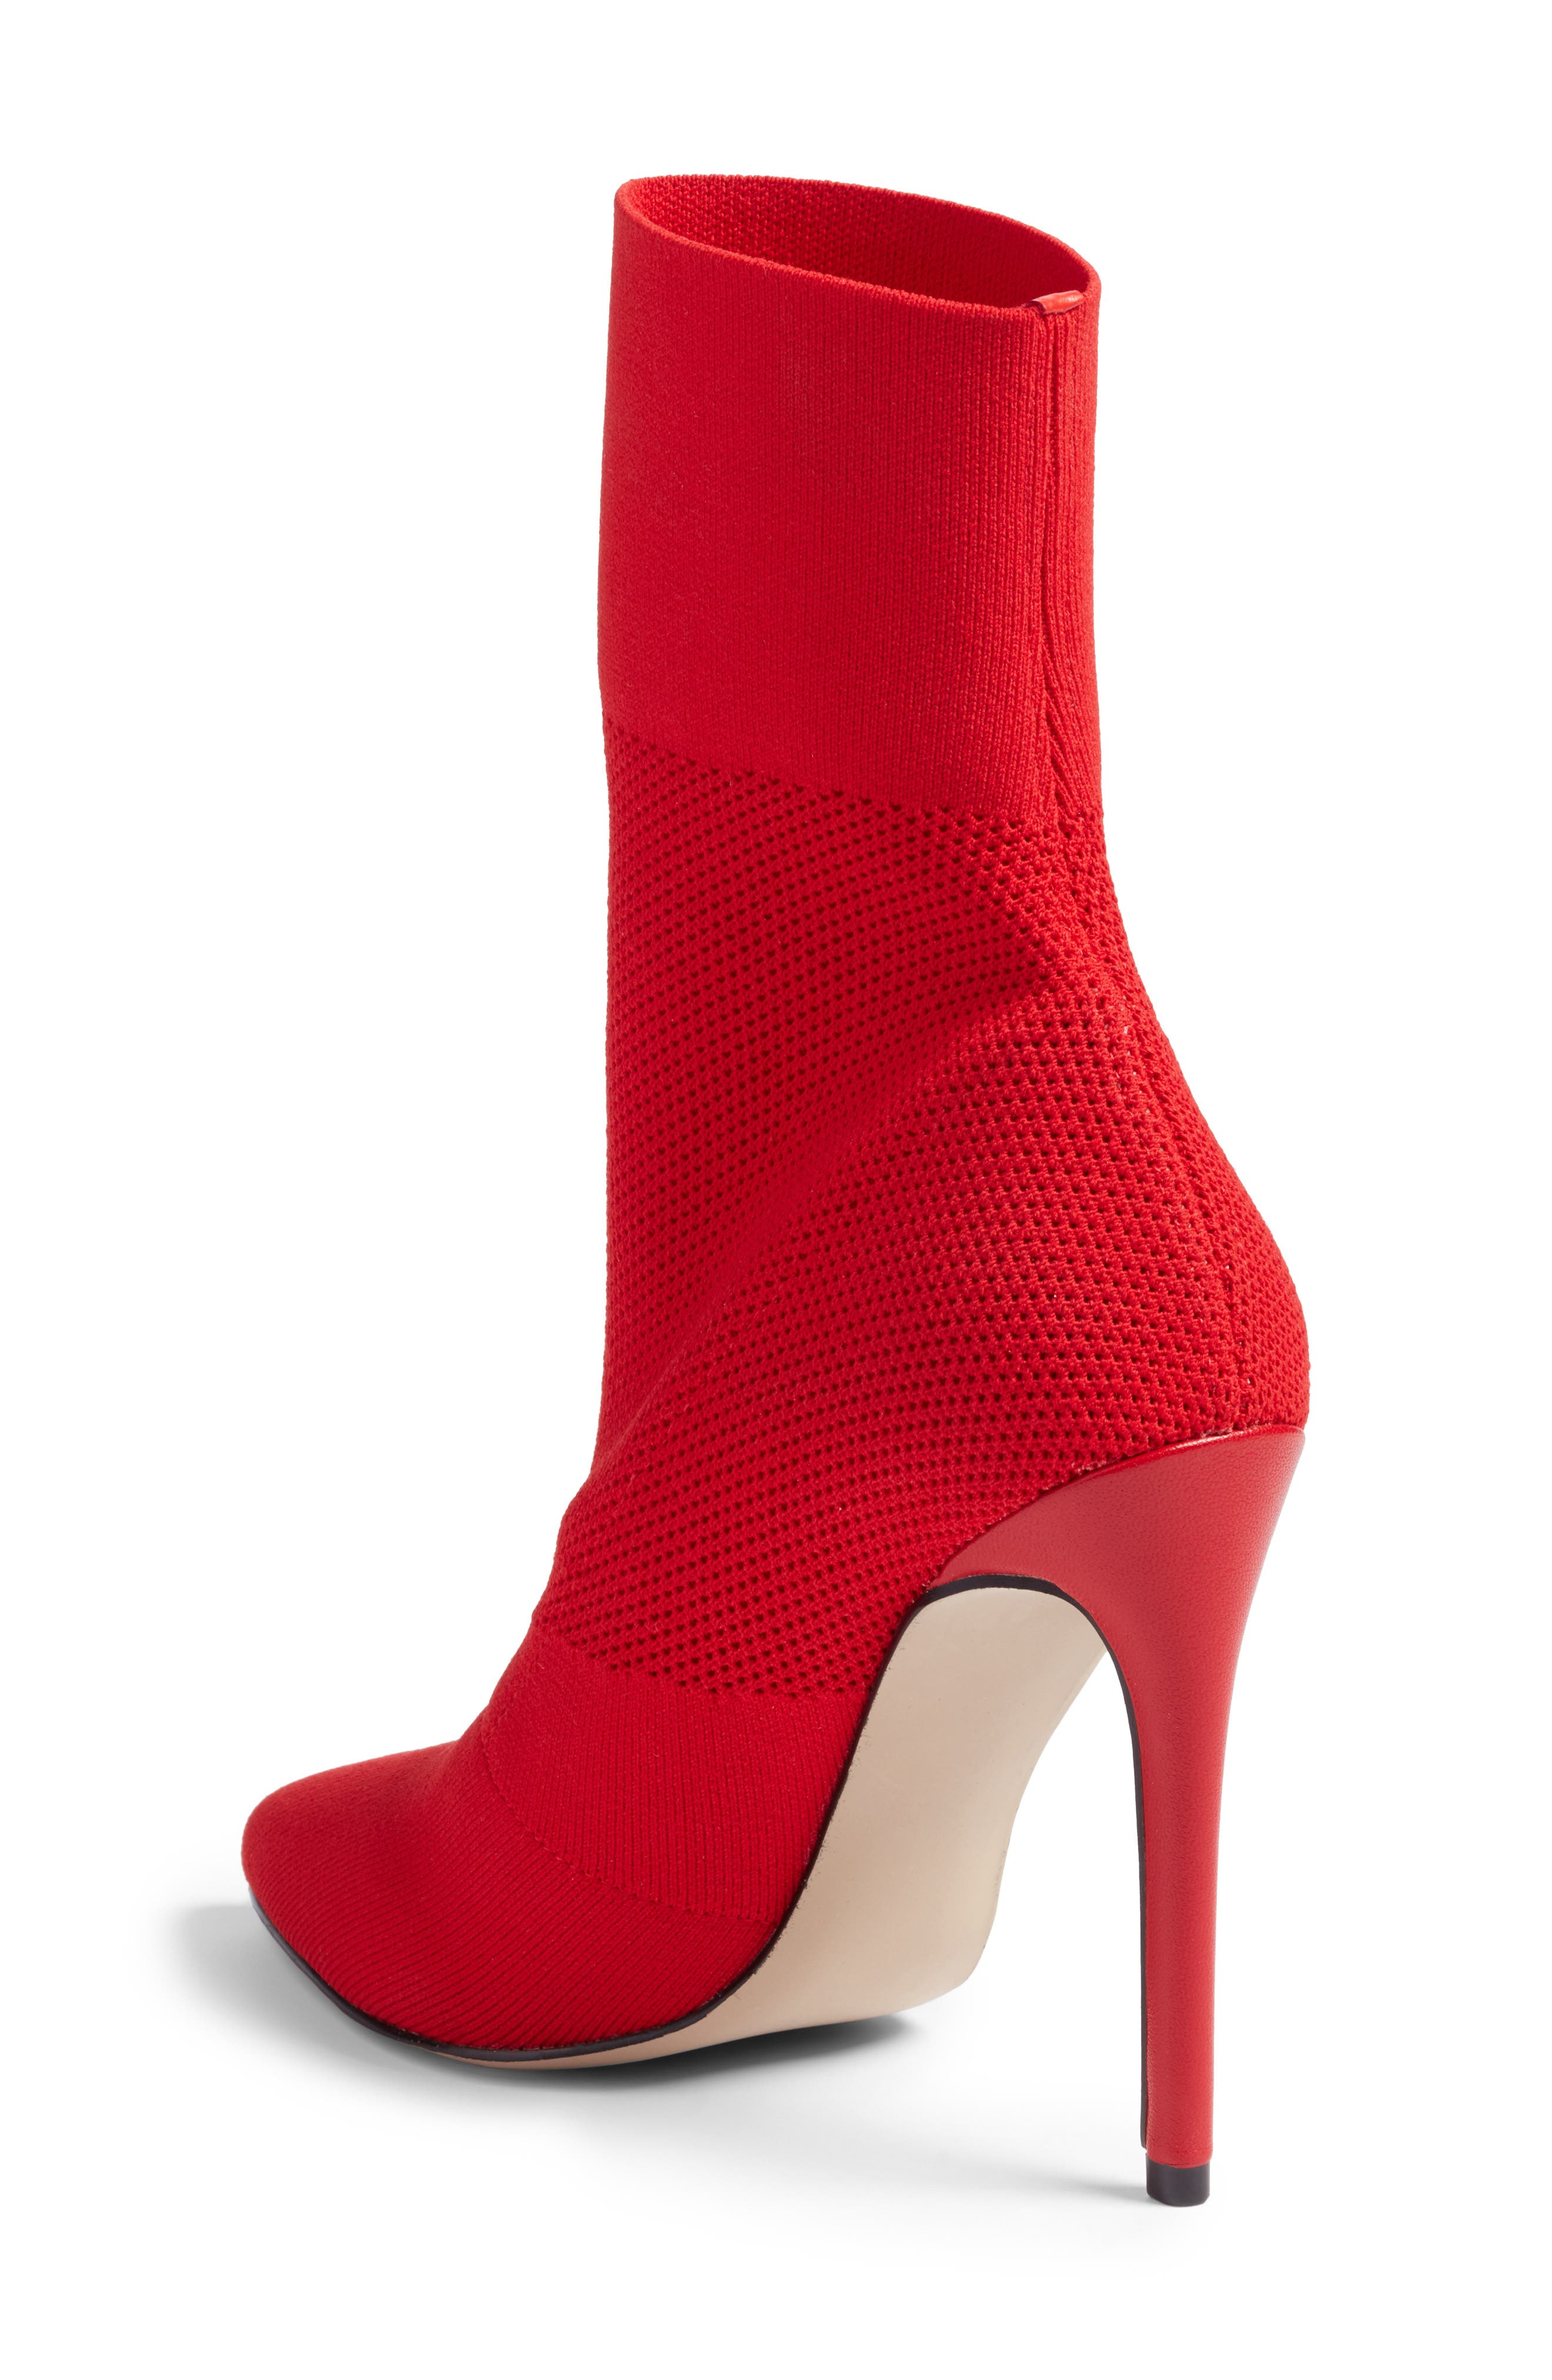 Century Woven Bootie,                             Alternate thumbnail 2, color,                             Red Fabric